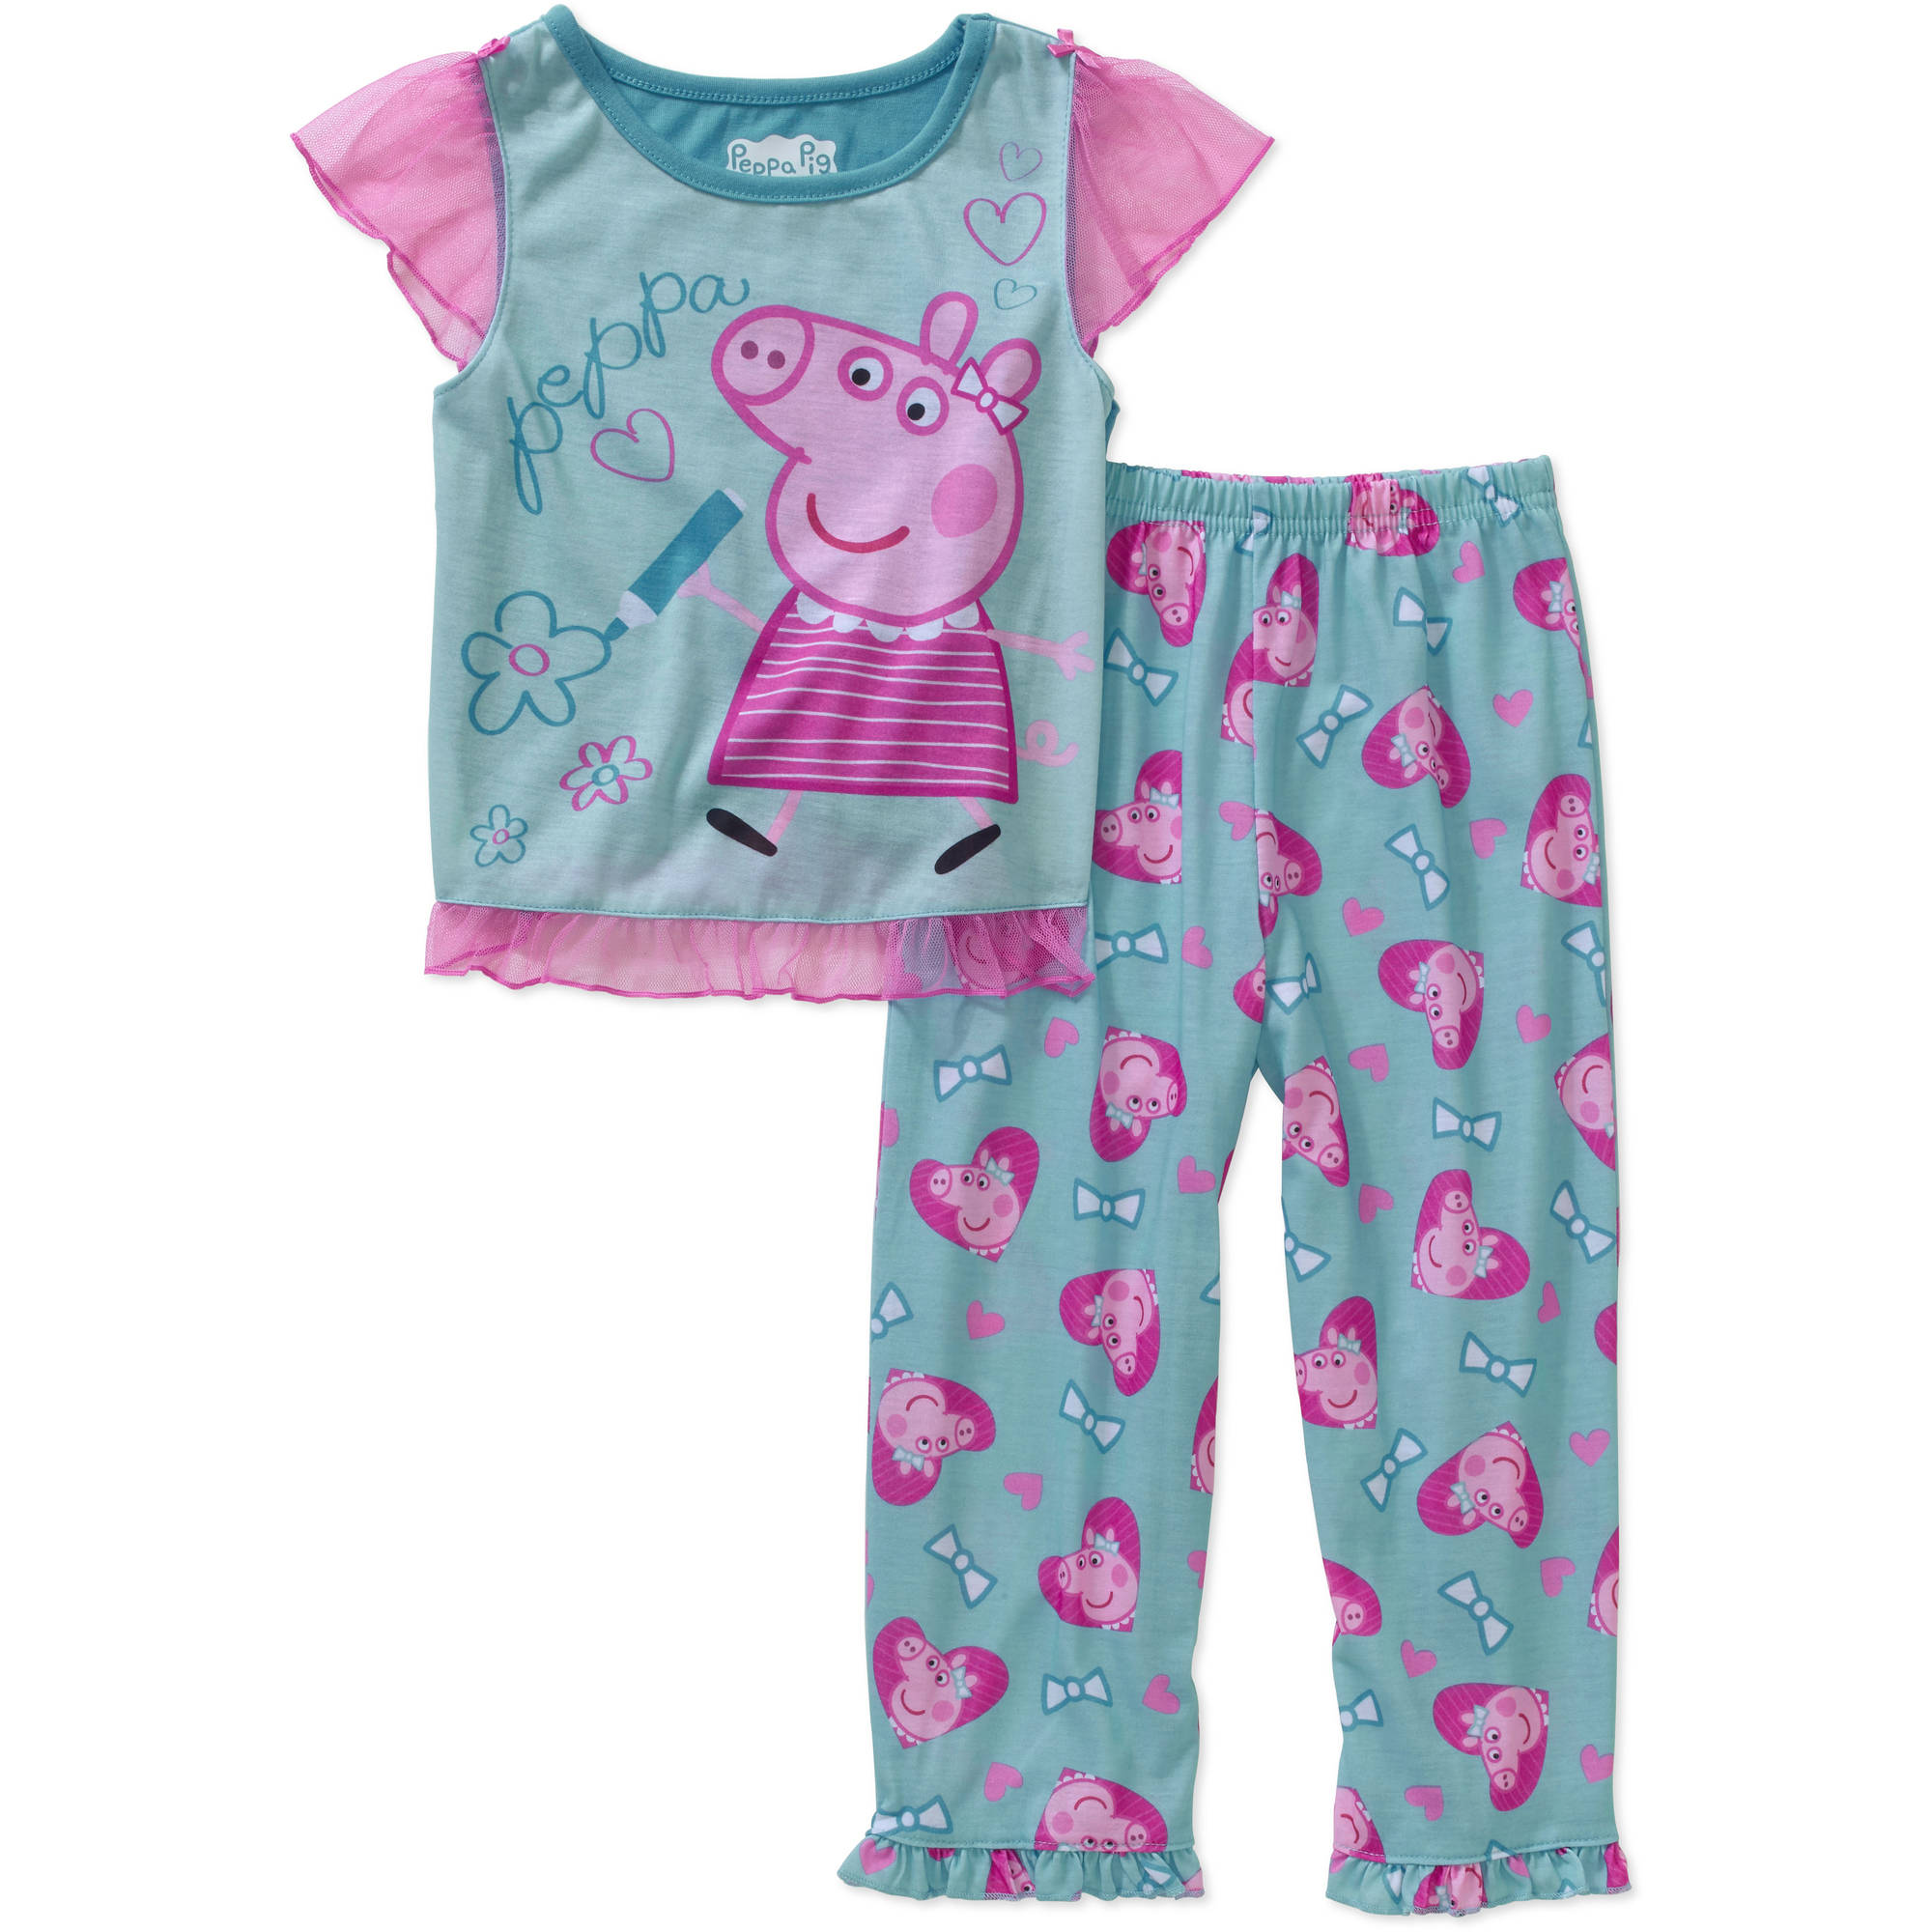 Peppa Pig Toddler Girl Short Sleeve Pajama Sleepwear Set-Online Exclusive